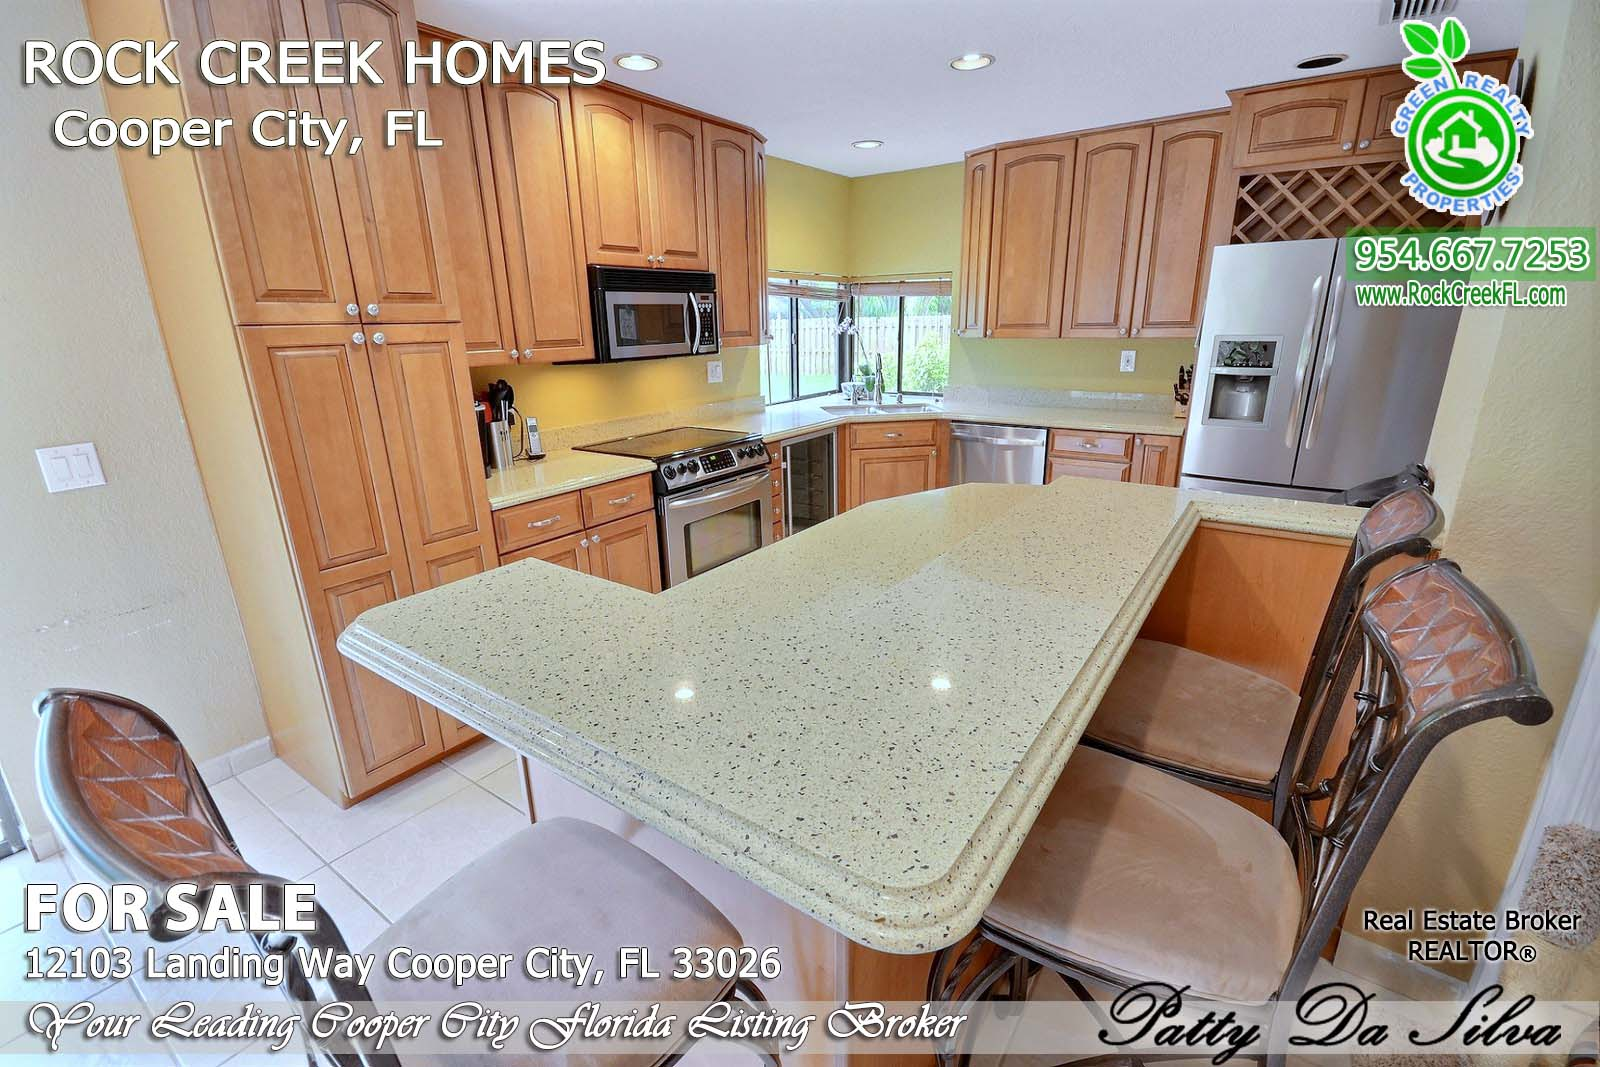 12103 Landing Way, Cooper City FL 33026 (17)